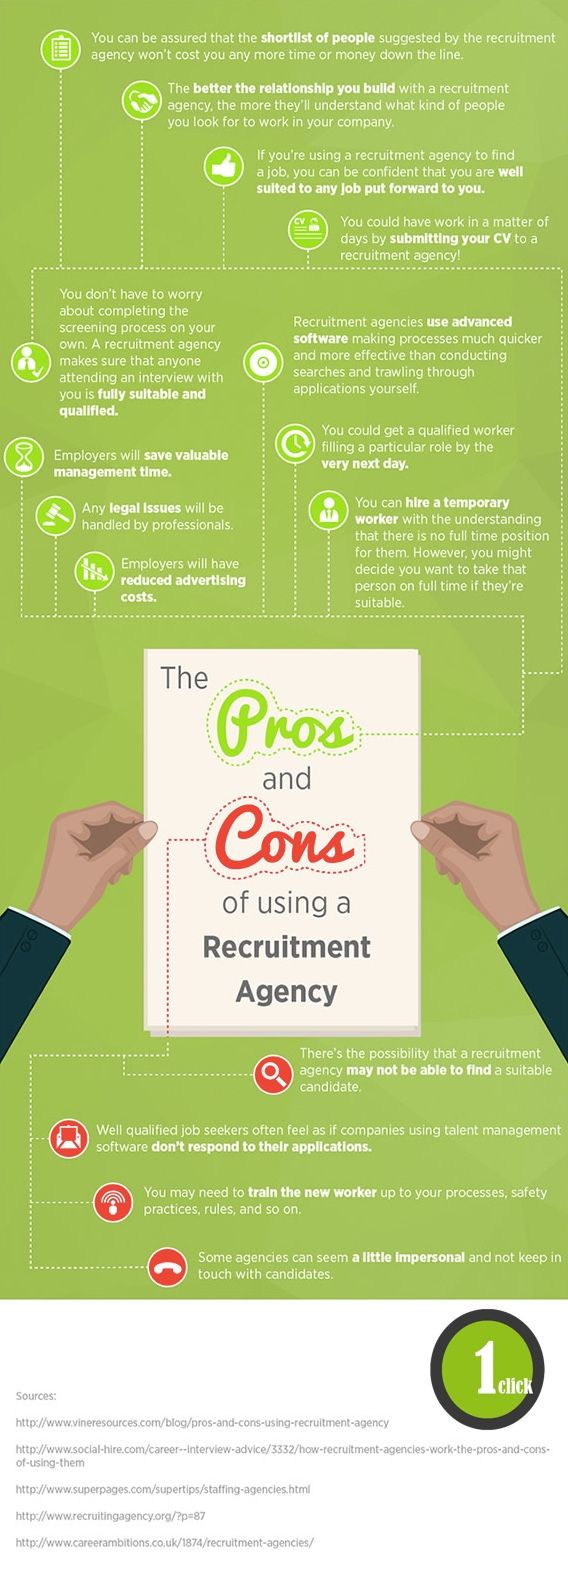 Read the Pros and Cons of using a Recruitment Agency